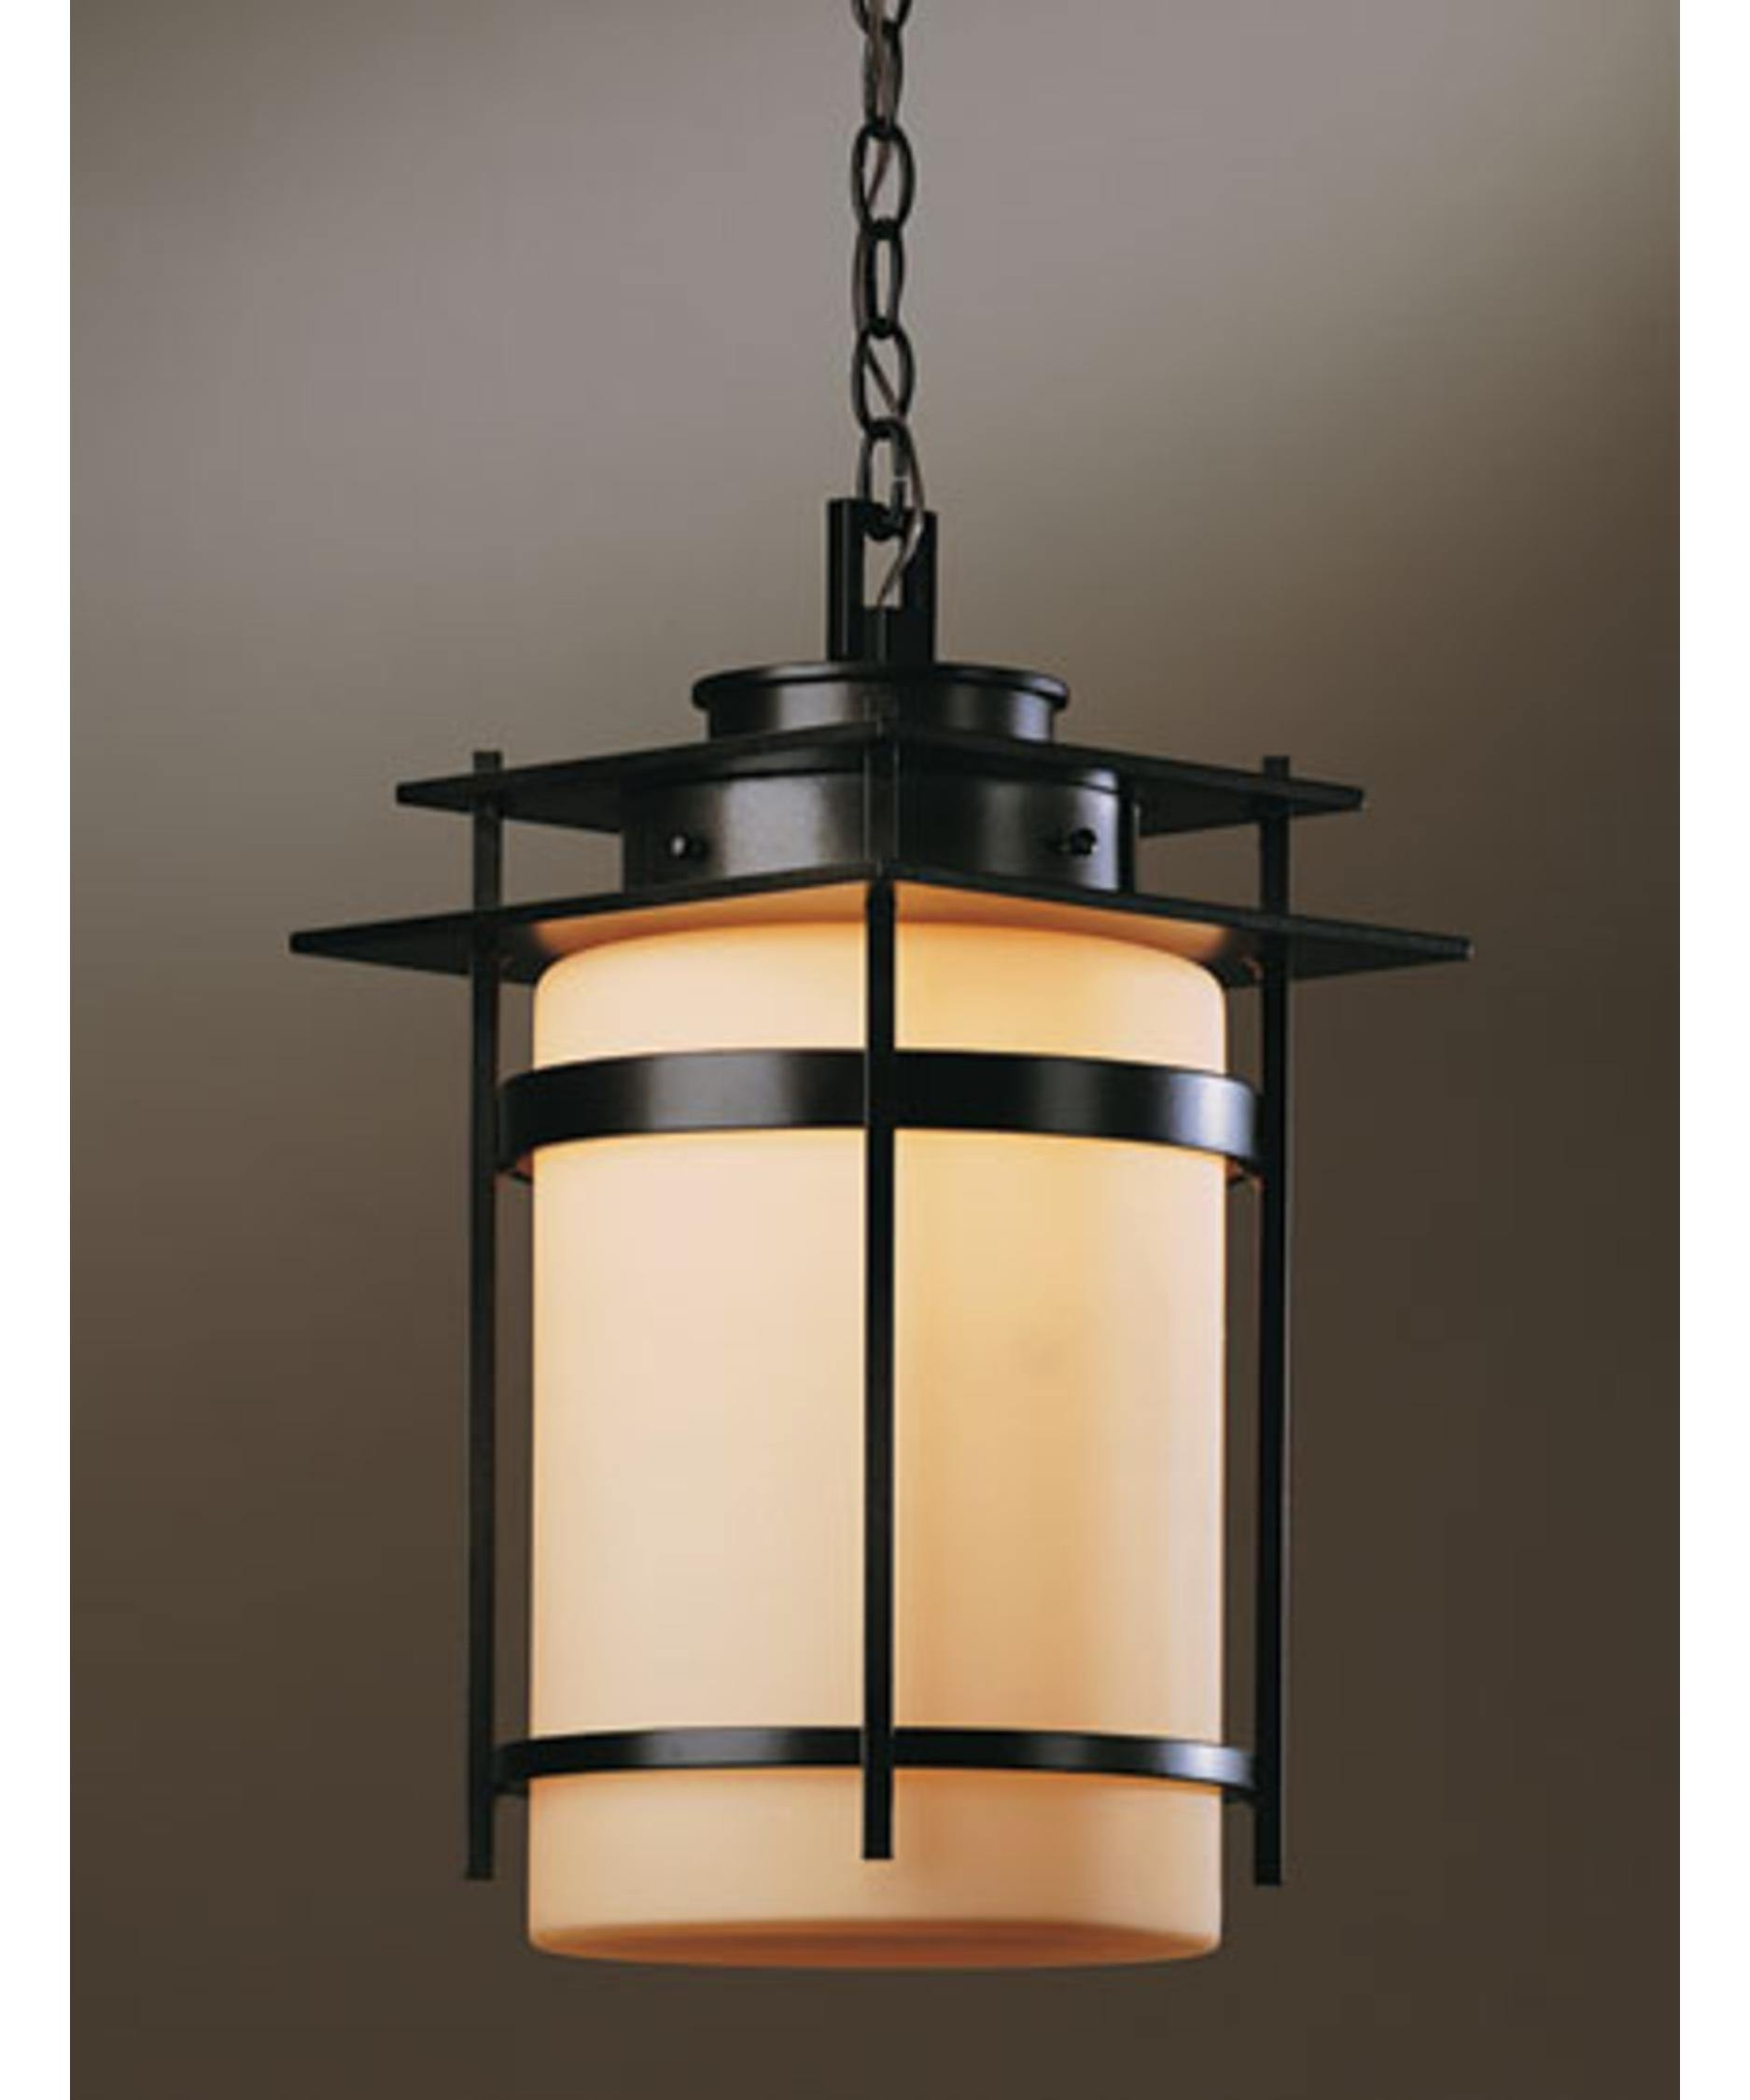 41 Examples Elaborate Outdoor Pendant Lighting With Plug Fixtures Intended For Hanging Outdoor Light On Rod (#1 of 16)